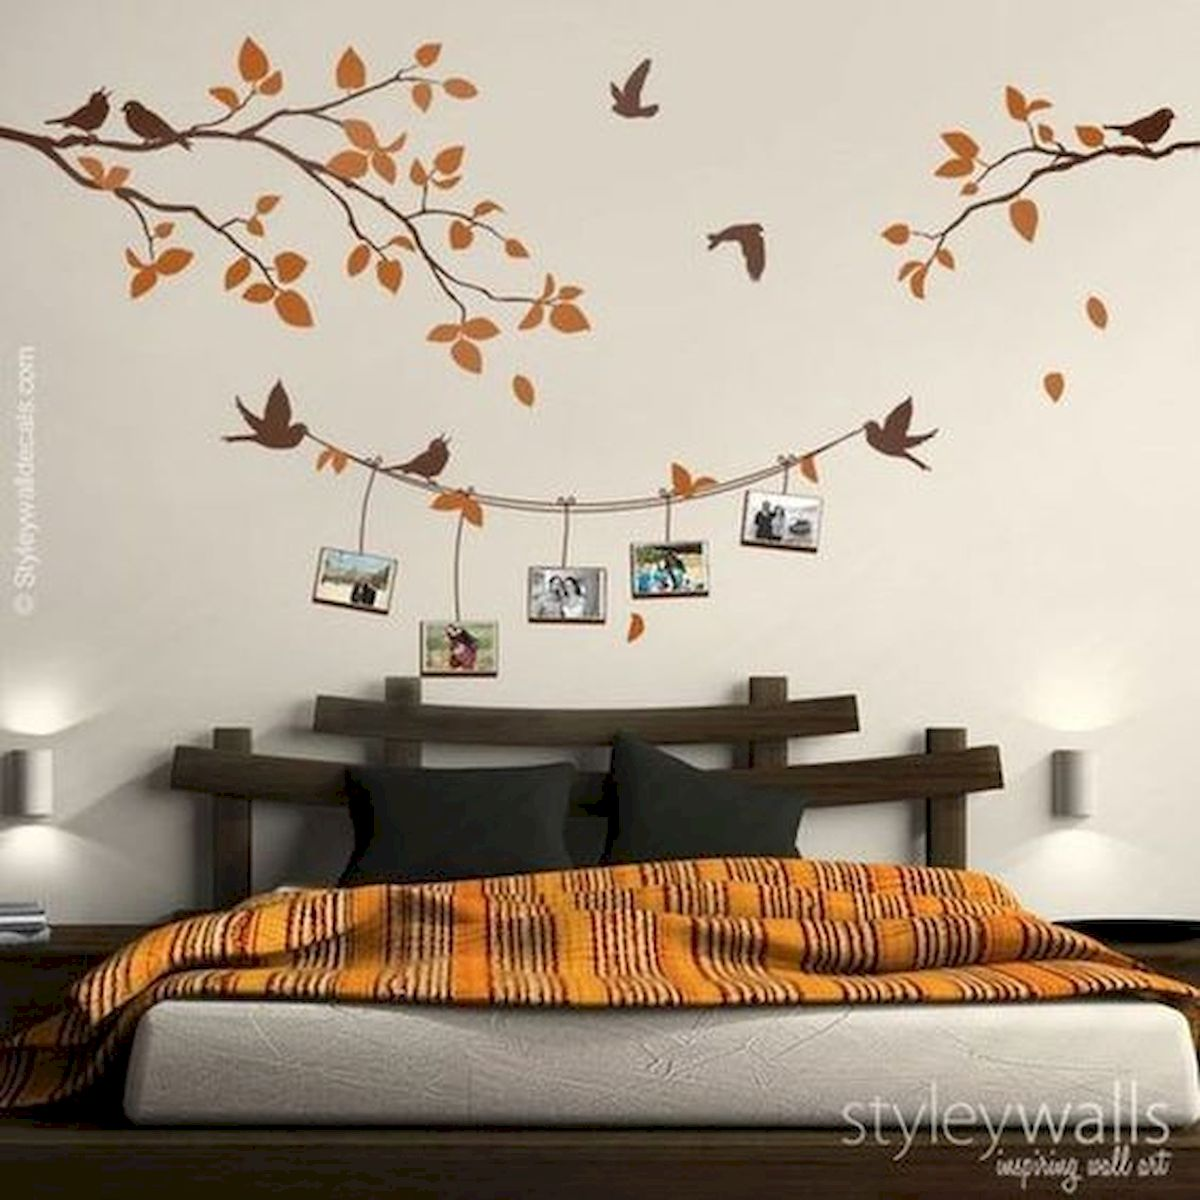 44 Easy but Awesome DIY Wall Painting Ideas to Decorate Your Home (44)